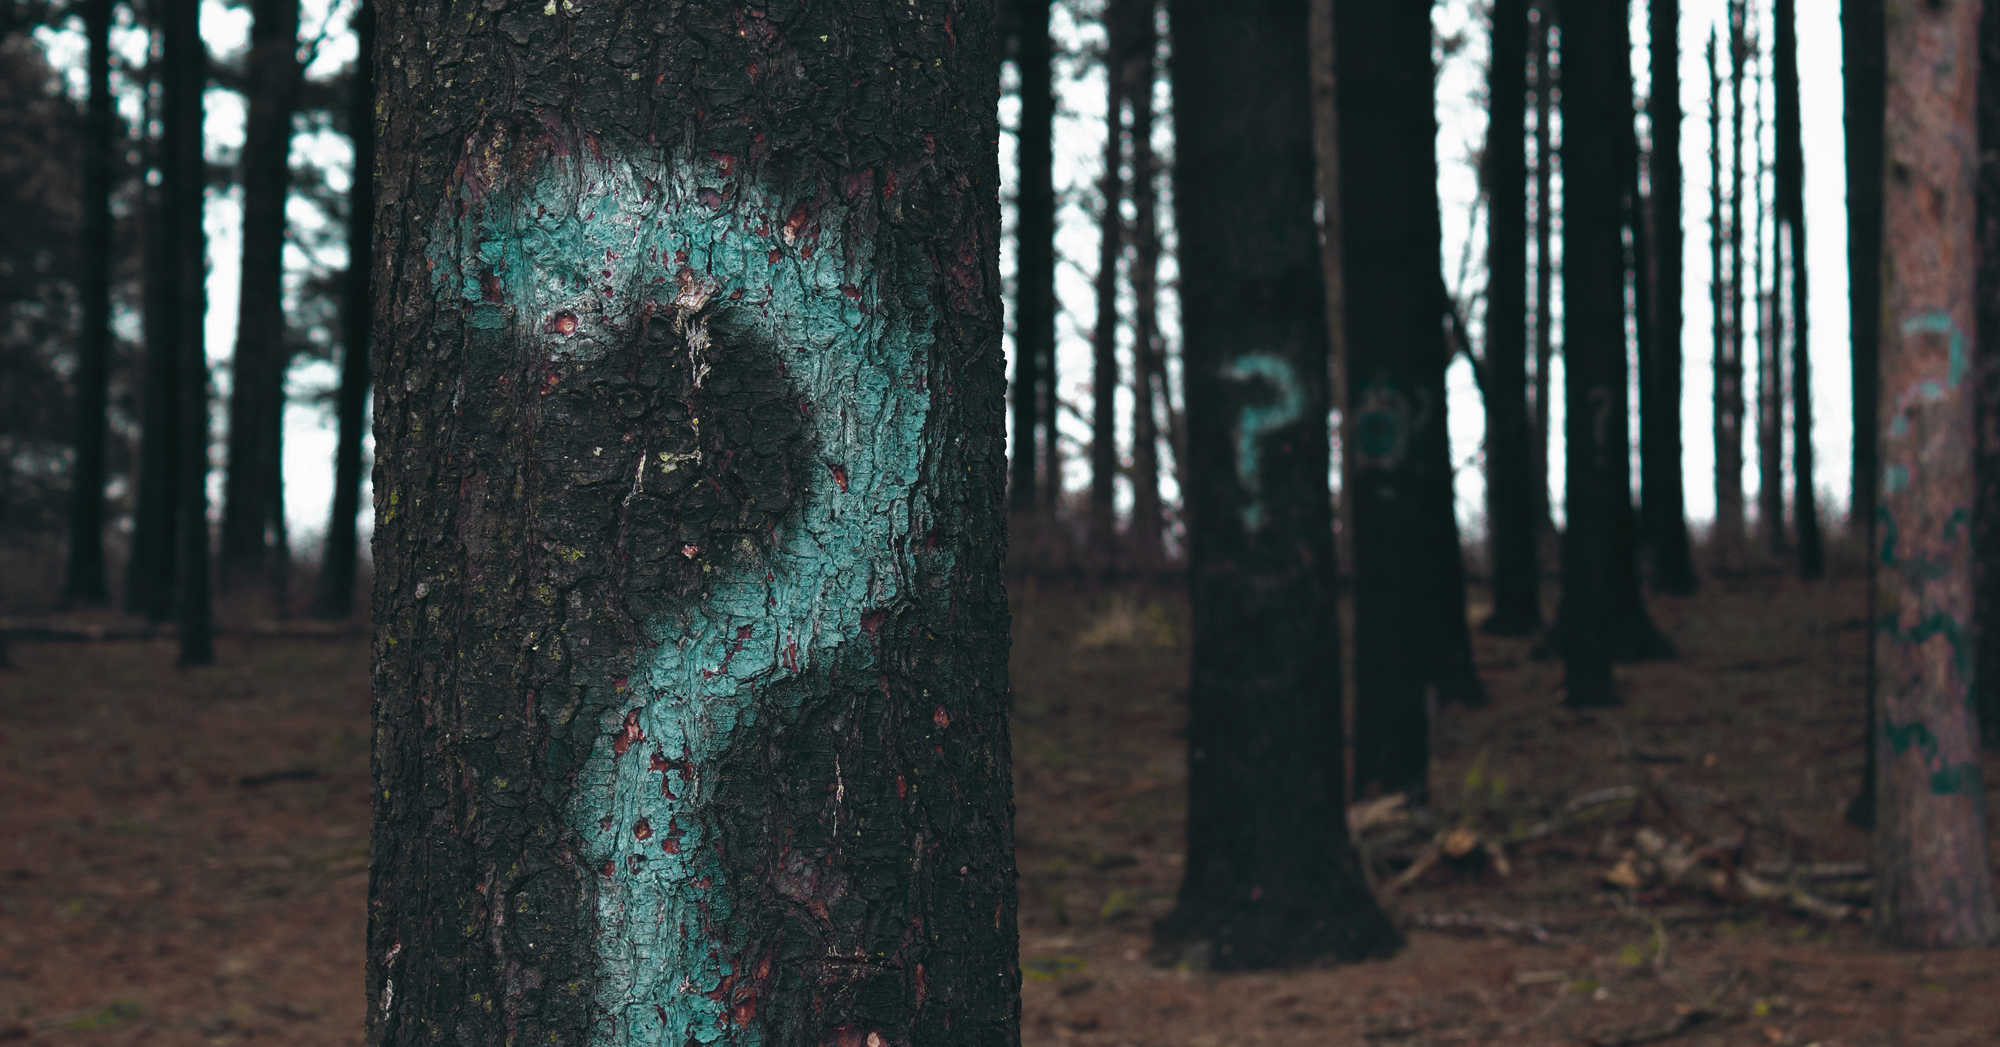 a copse of trees with question marks painted on them